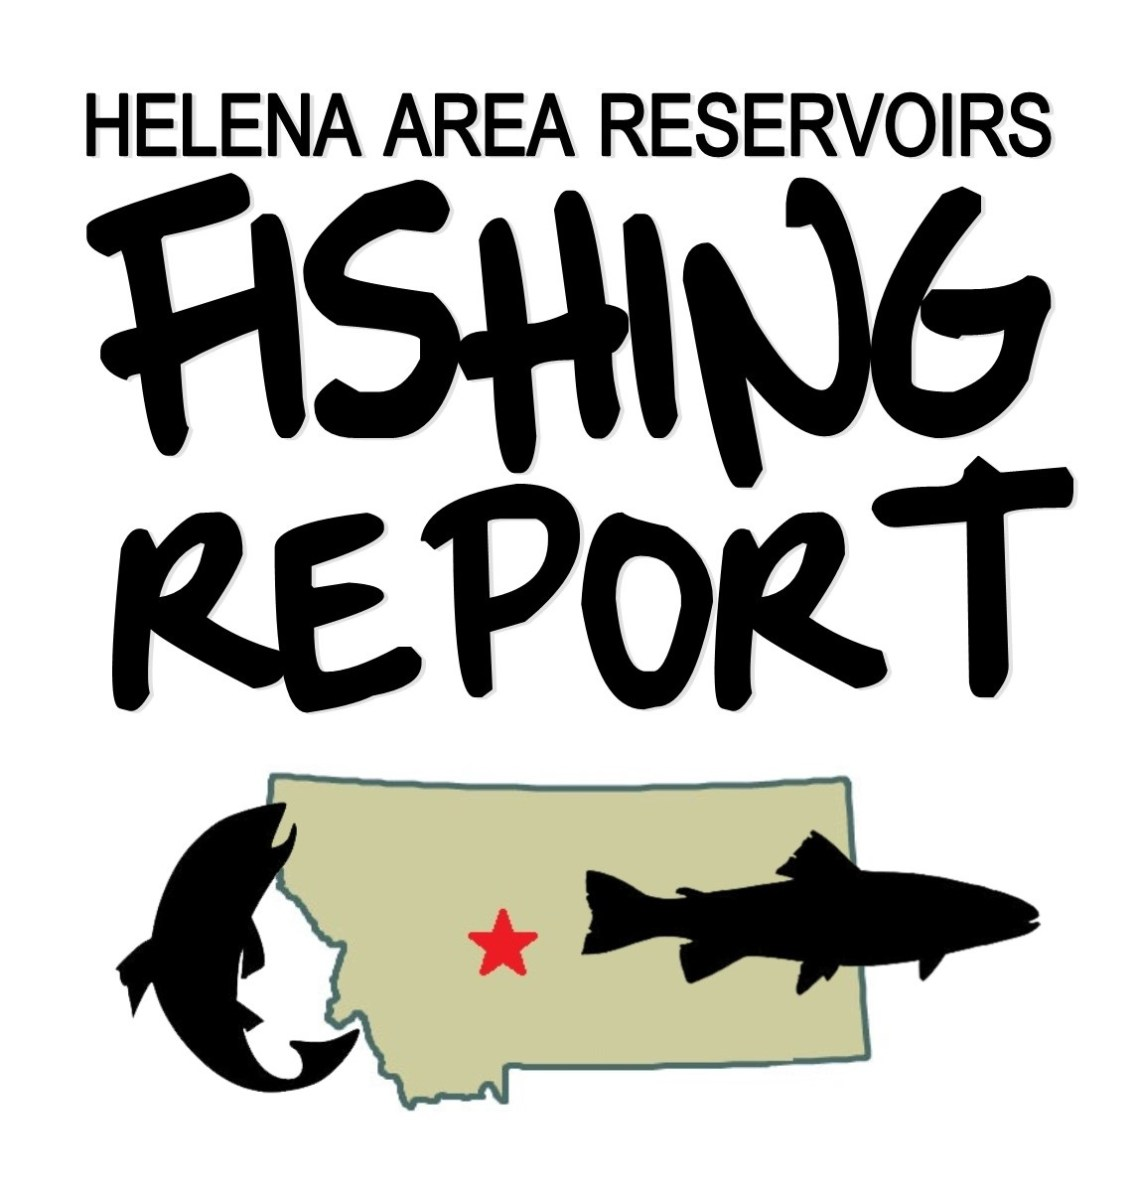 Helena Area Reservoirs Fishing Report for the Week of 7.28.14